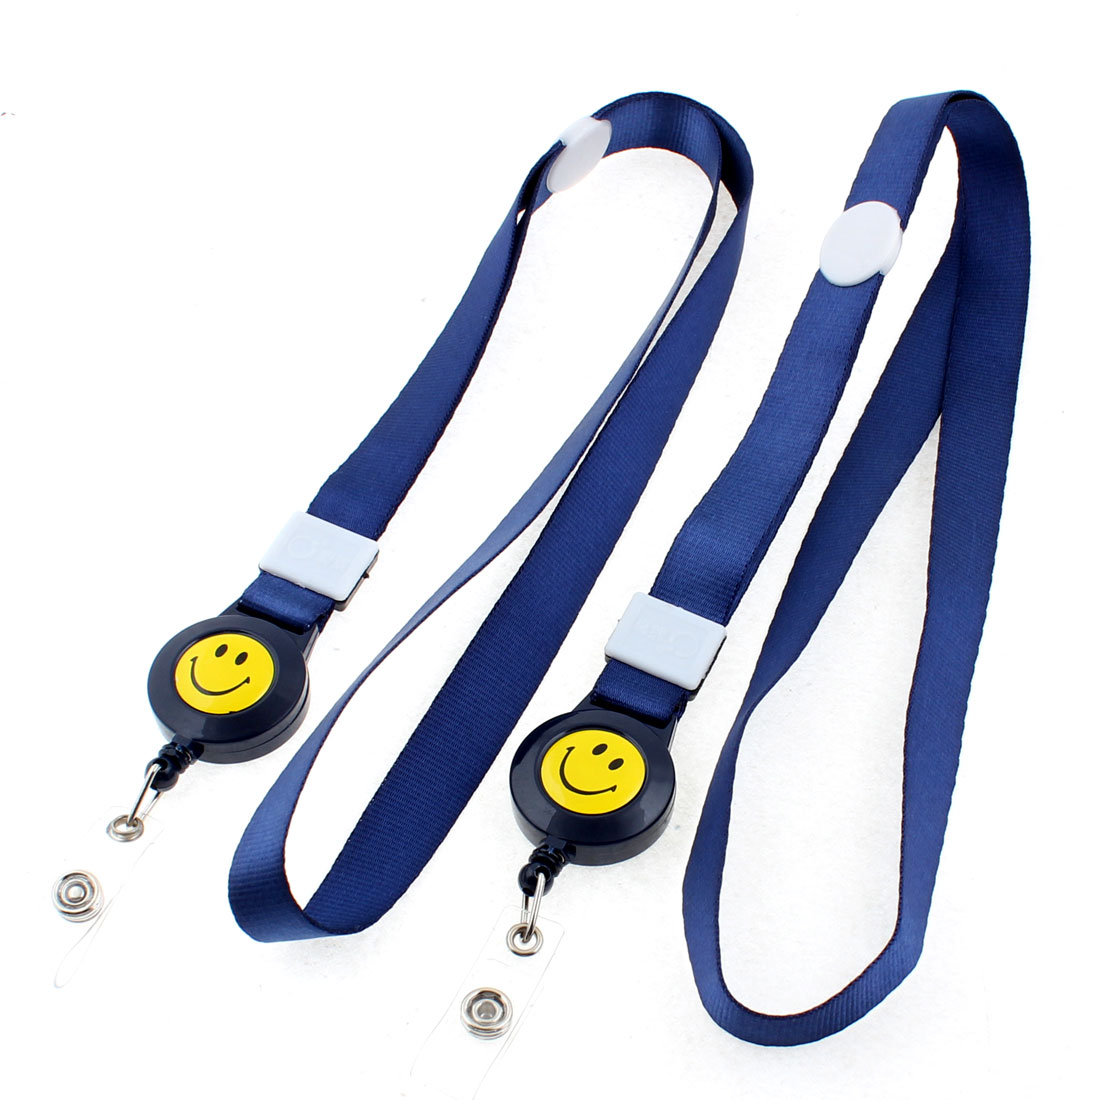 Work School Name ID Card Badge Holder Neck Strap Dark Blue 2PCS